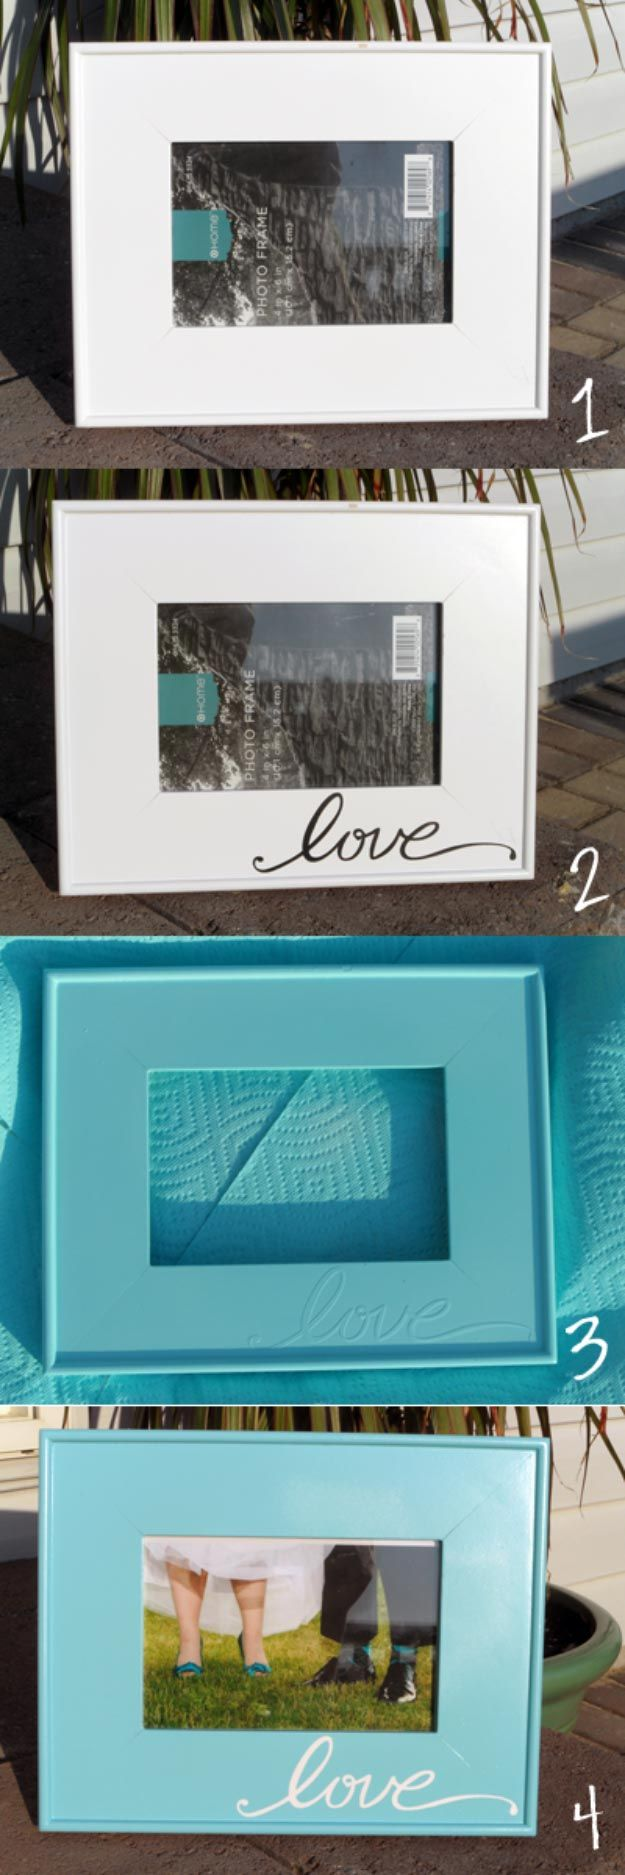 Easy Love Frame   DIY Cricut Crafts & Ideas   Fun and Cute Projects for Kids and Adults by DIY Ready at http://diyready.com/diy-cricut-crafts/